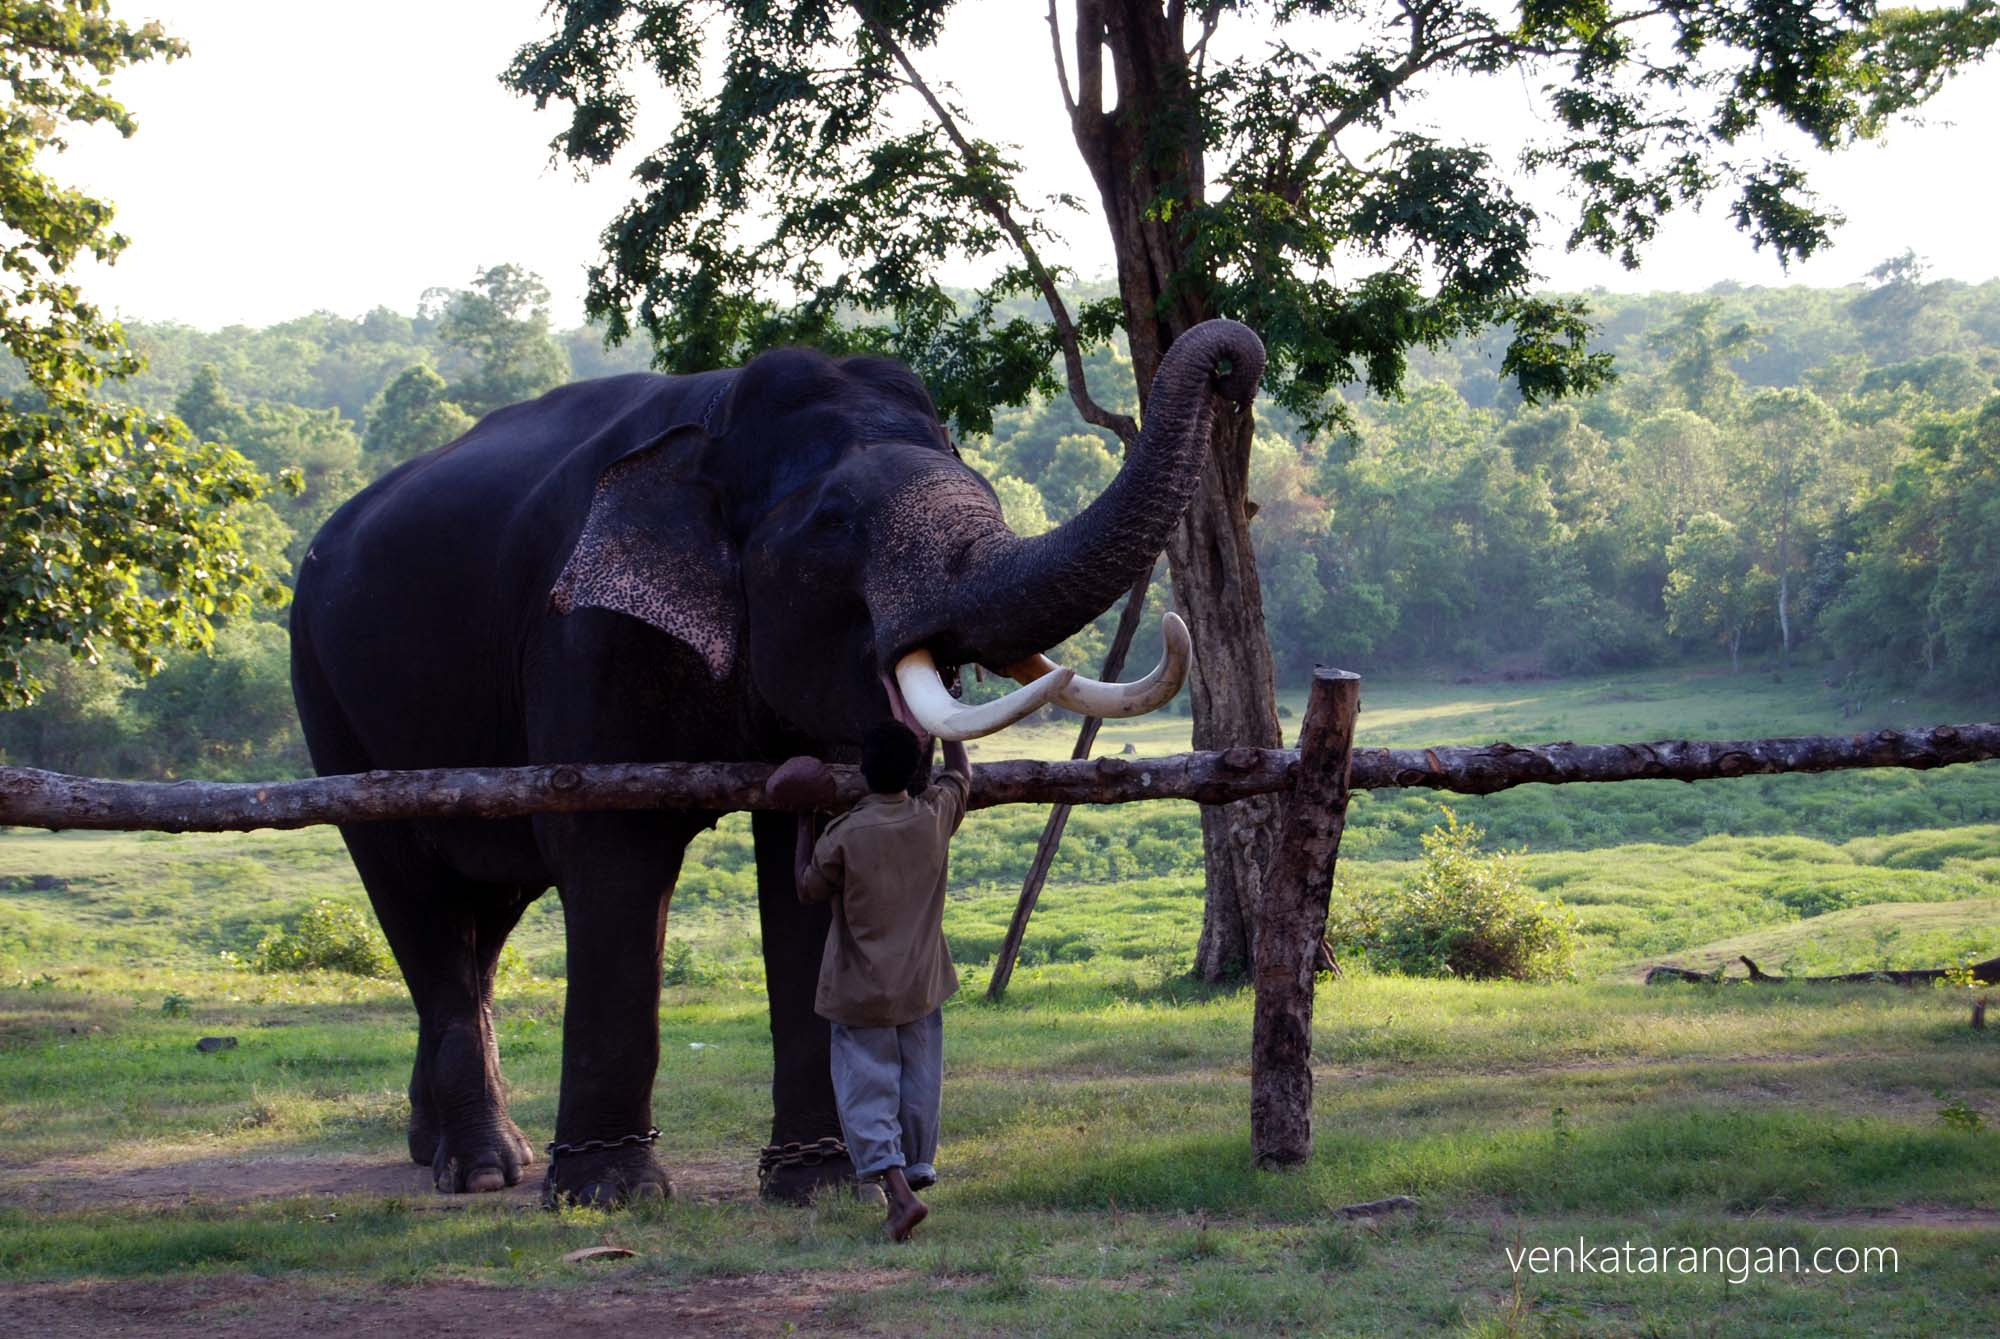 An Elephant having its meal given to it